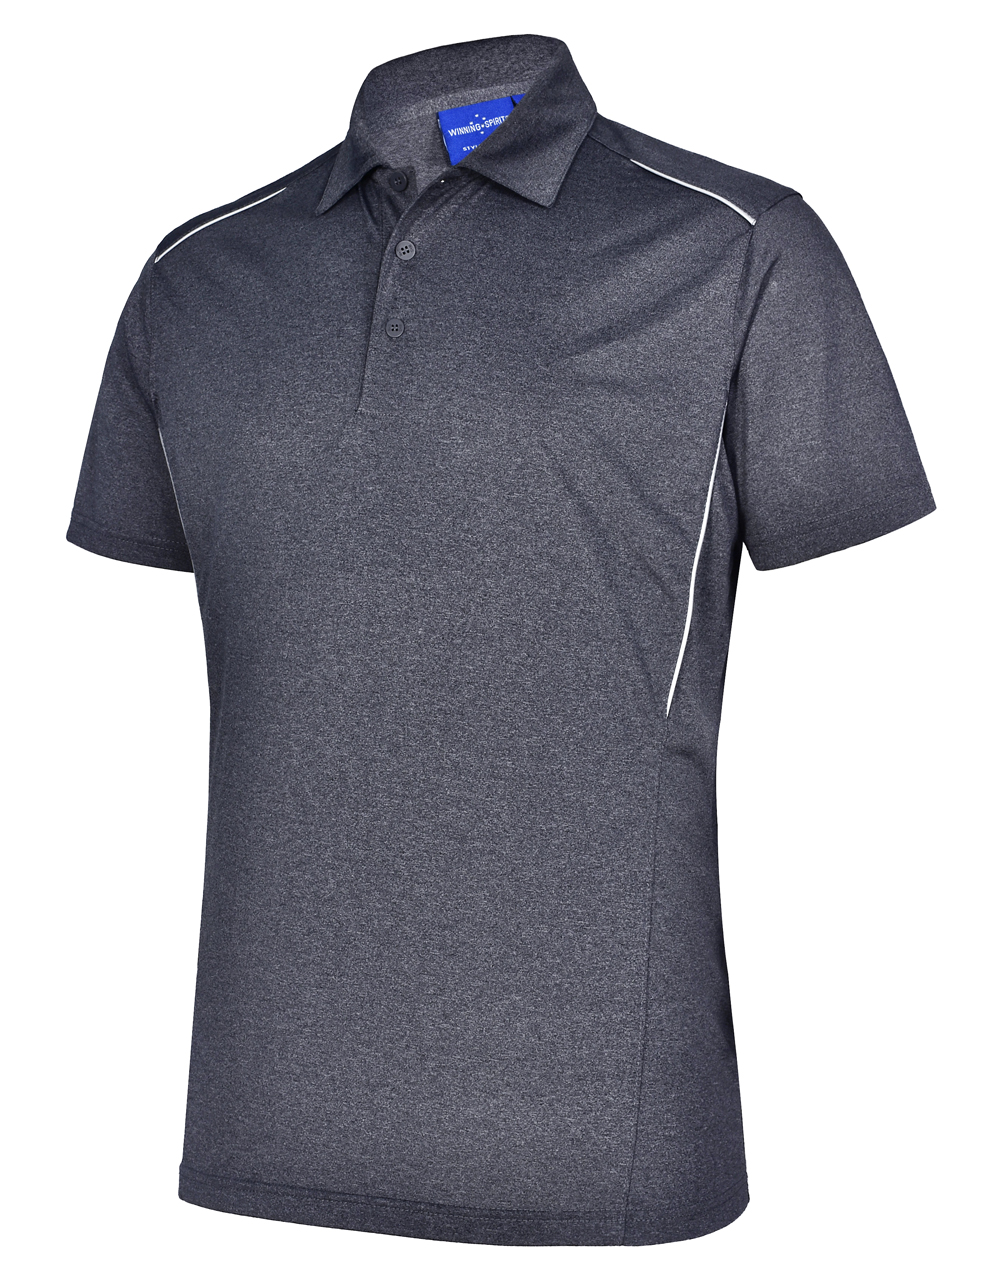 https://s3-ap-southeast-1.amazonaws.com/ws-imgs/POLOSHIRTS/PS85_Navy_Side.jpg